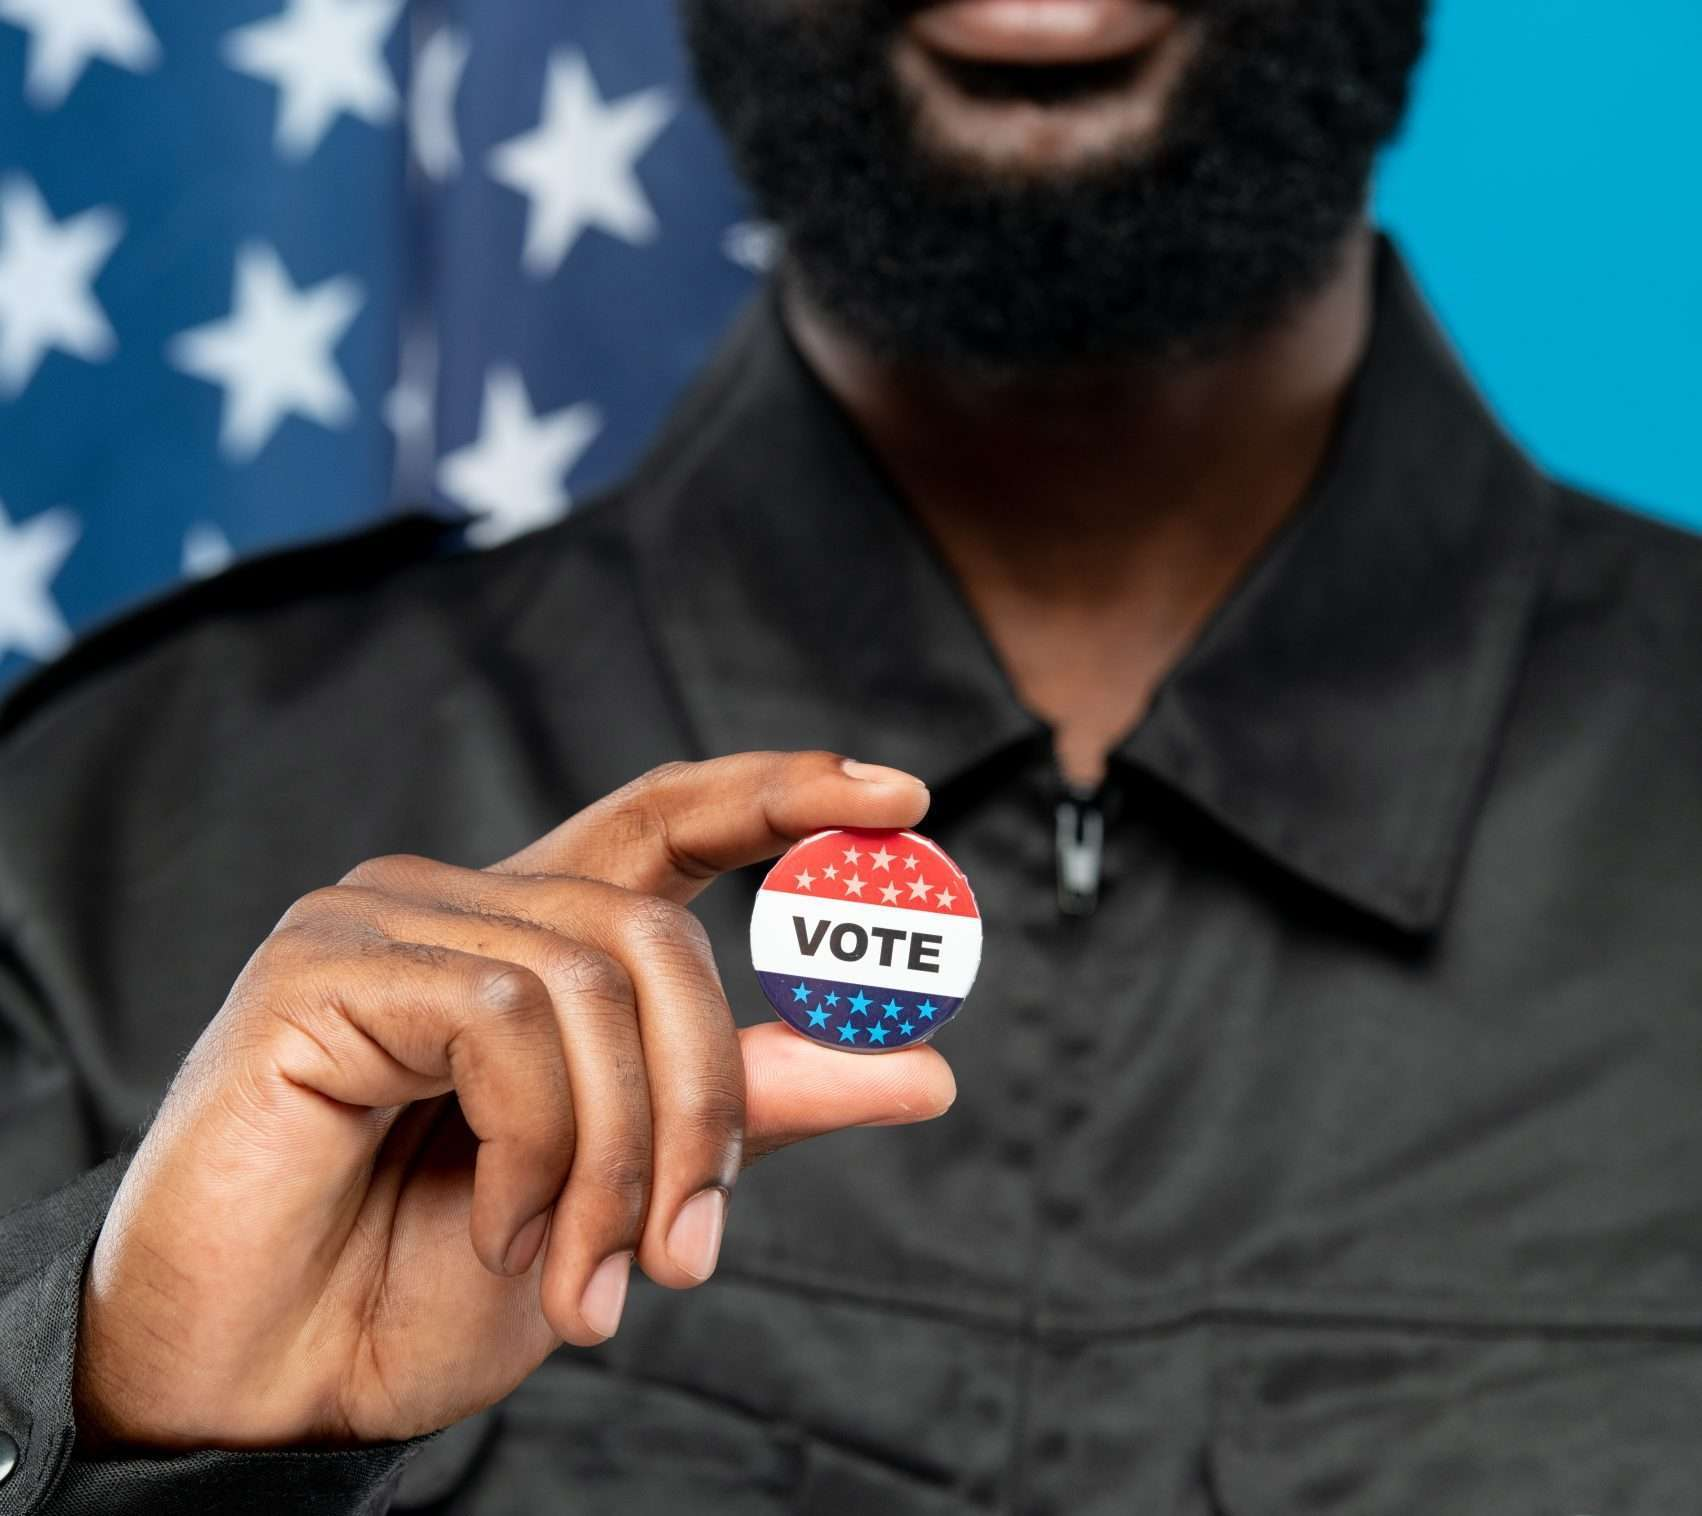 Should I vote Democrat or Republican? This Black Man's Dilemma